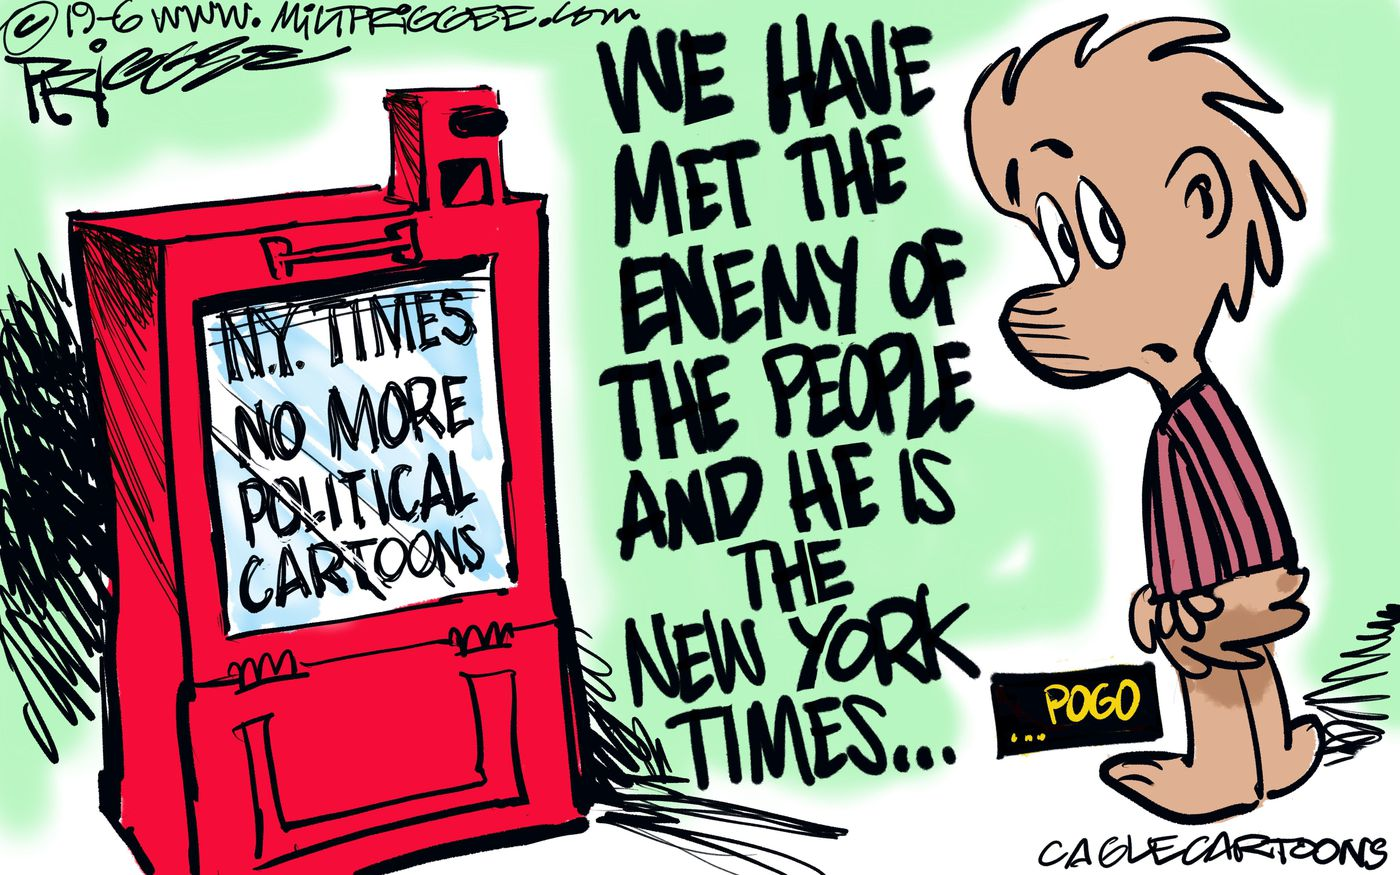 The New York Times Daily Cartoons Ban Reactions From Cartoonists